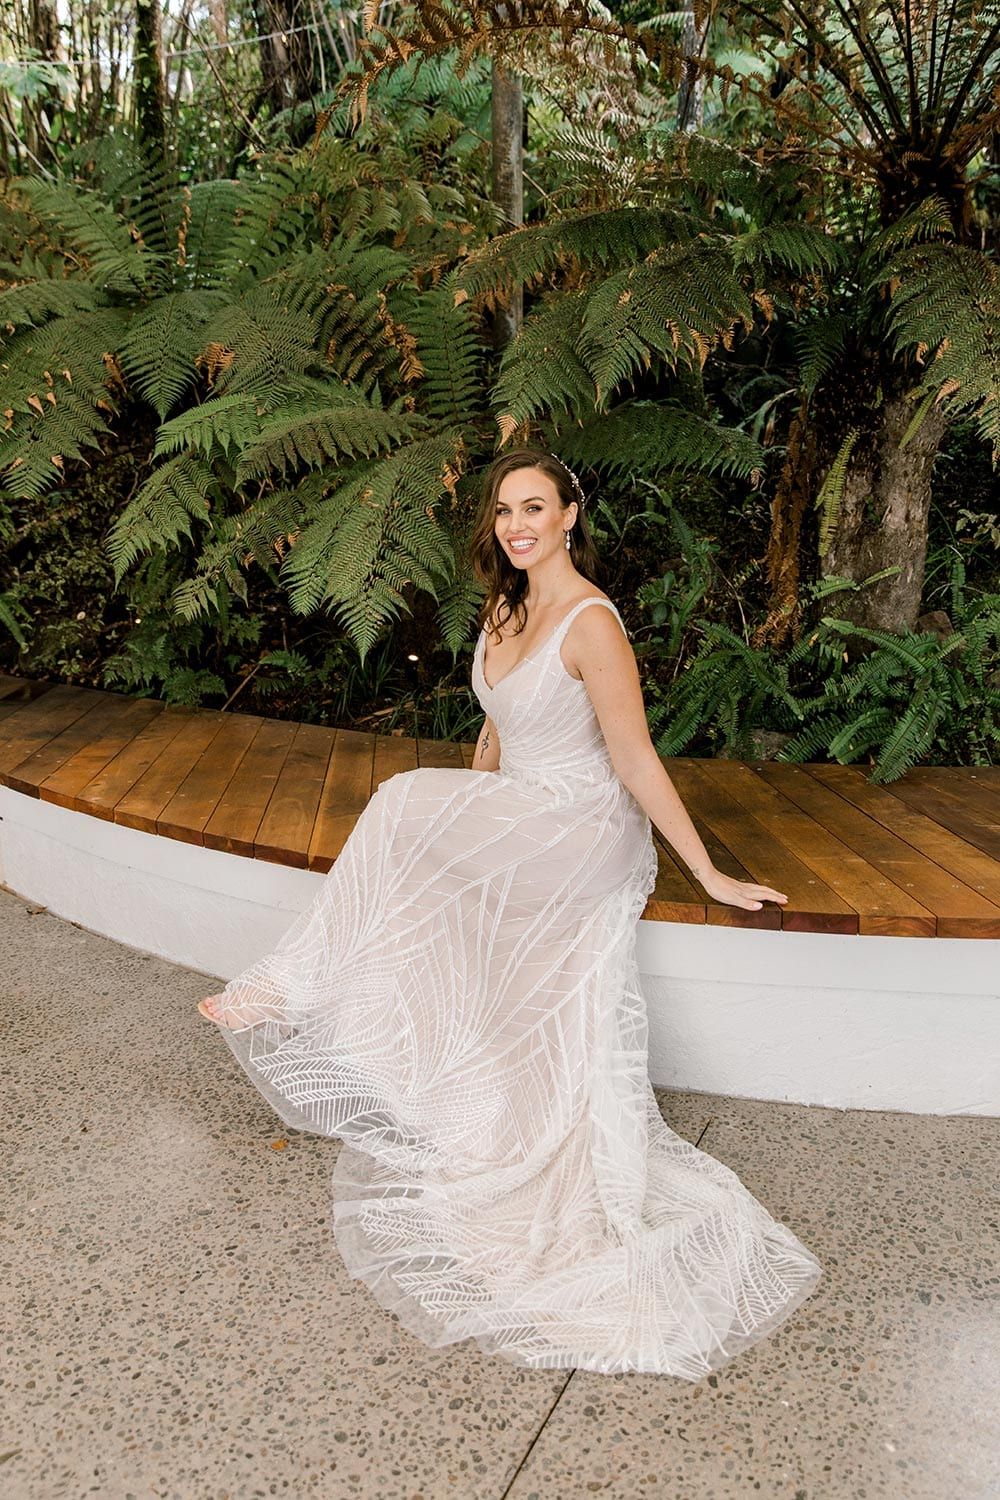 Amber Wedding Dress from Vinka Design. Beautiful wedding dress with V-neckline bodice & V-shaped back on a soft blush/light nude base. Rich beading sculpts the waist & relaxed-fit skirt falls to a train. Model sitting, dress and train flowing to the ground. Photographed at Tui Hills by Emmaline Photography.